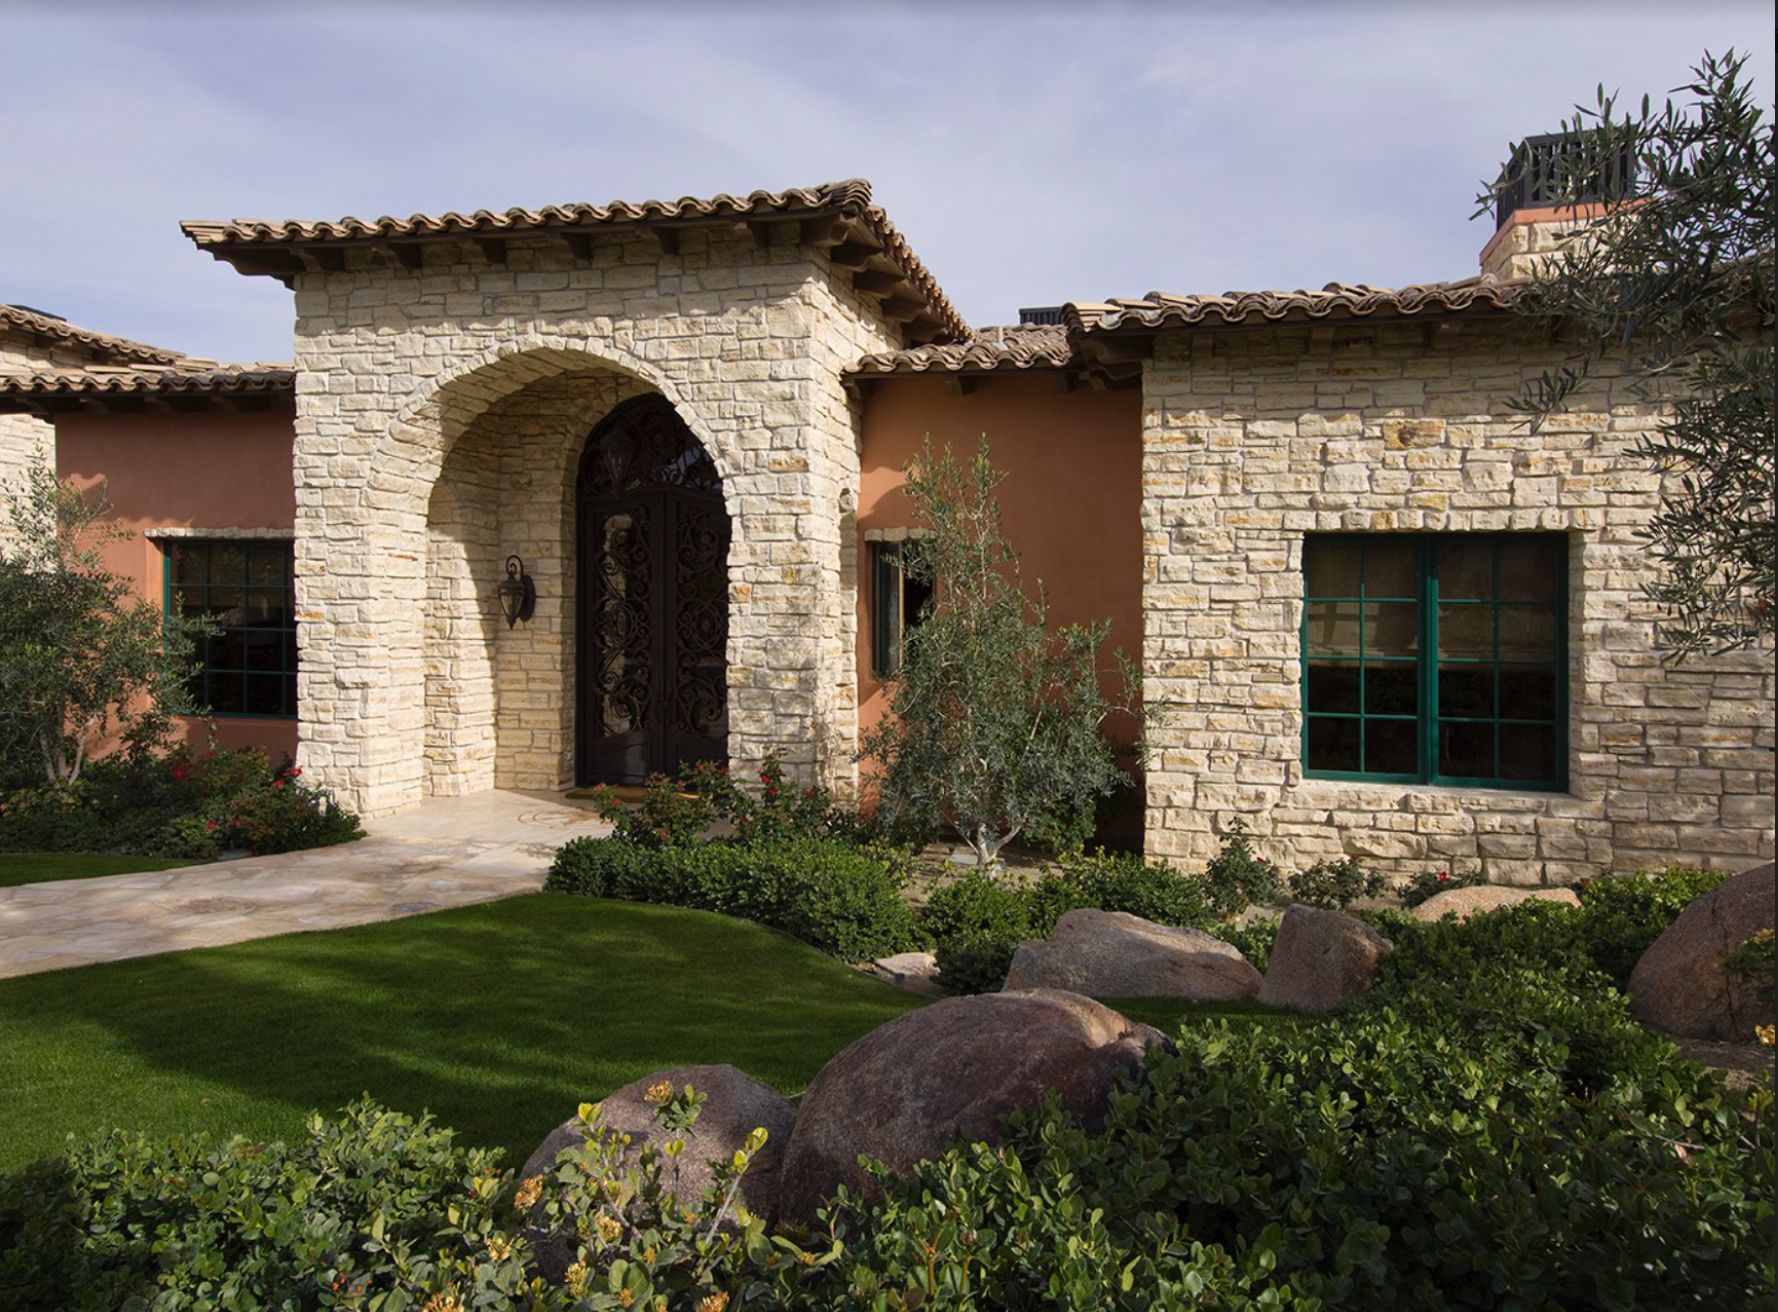 You'll want to work with an experienced architect or contractor to avoid that stone stick-on look of early aughts McMansions, but adding some stone to your home's exterior is a great way to add style and texture.